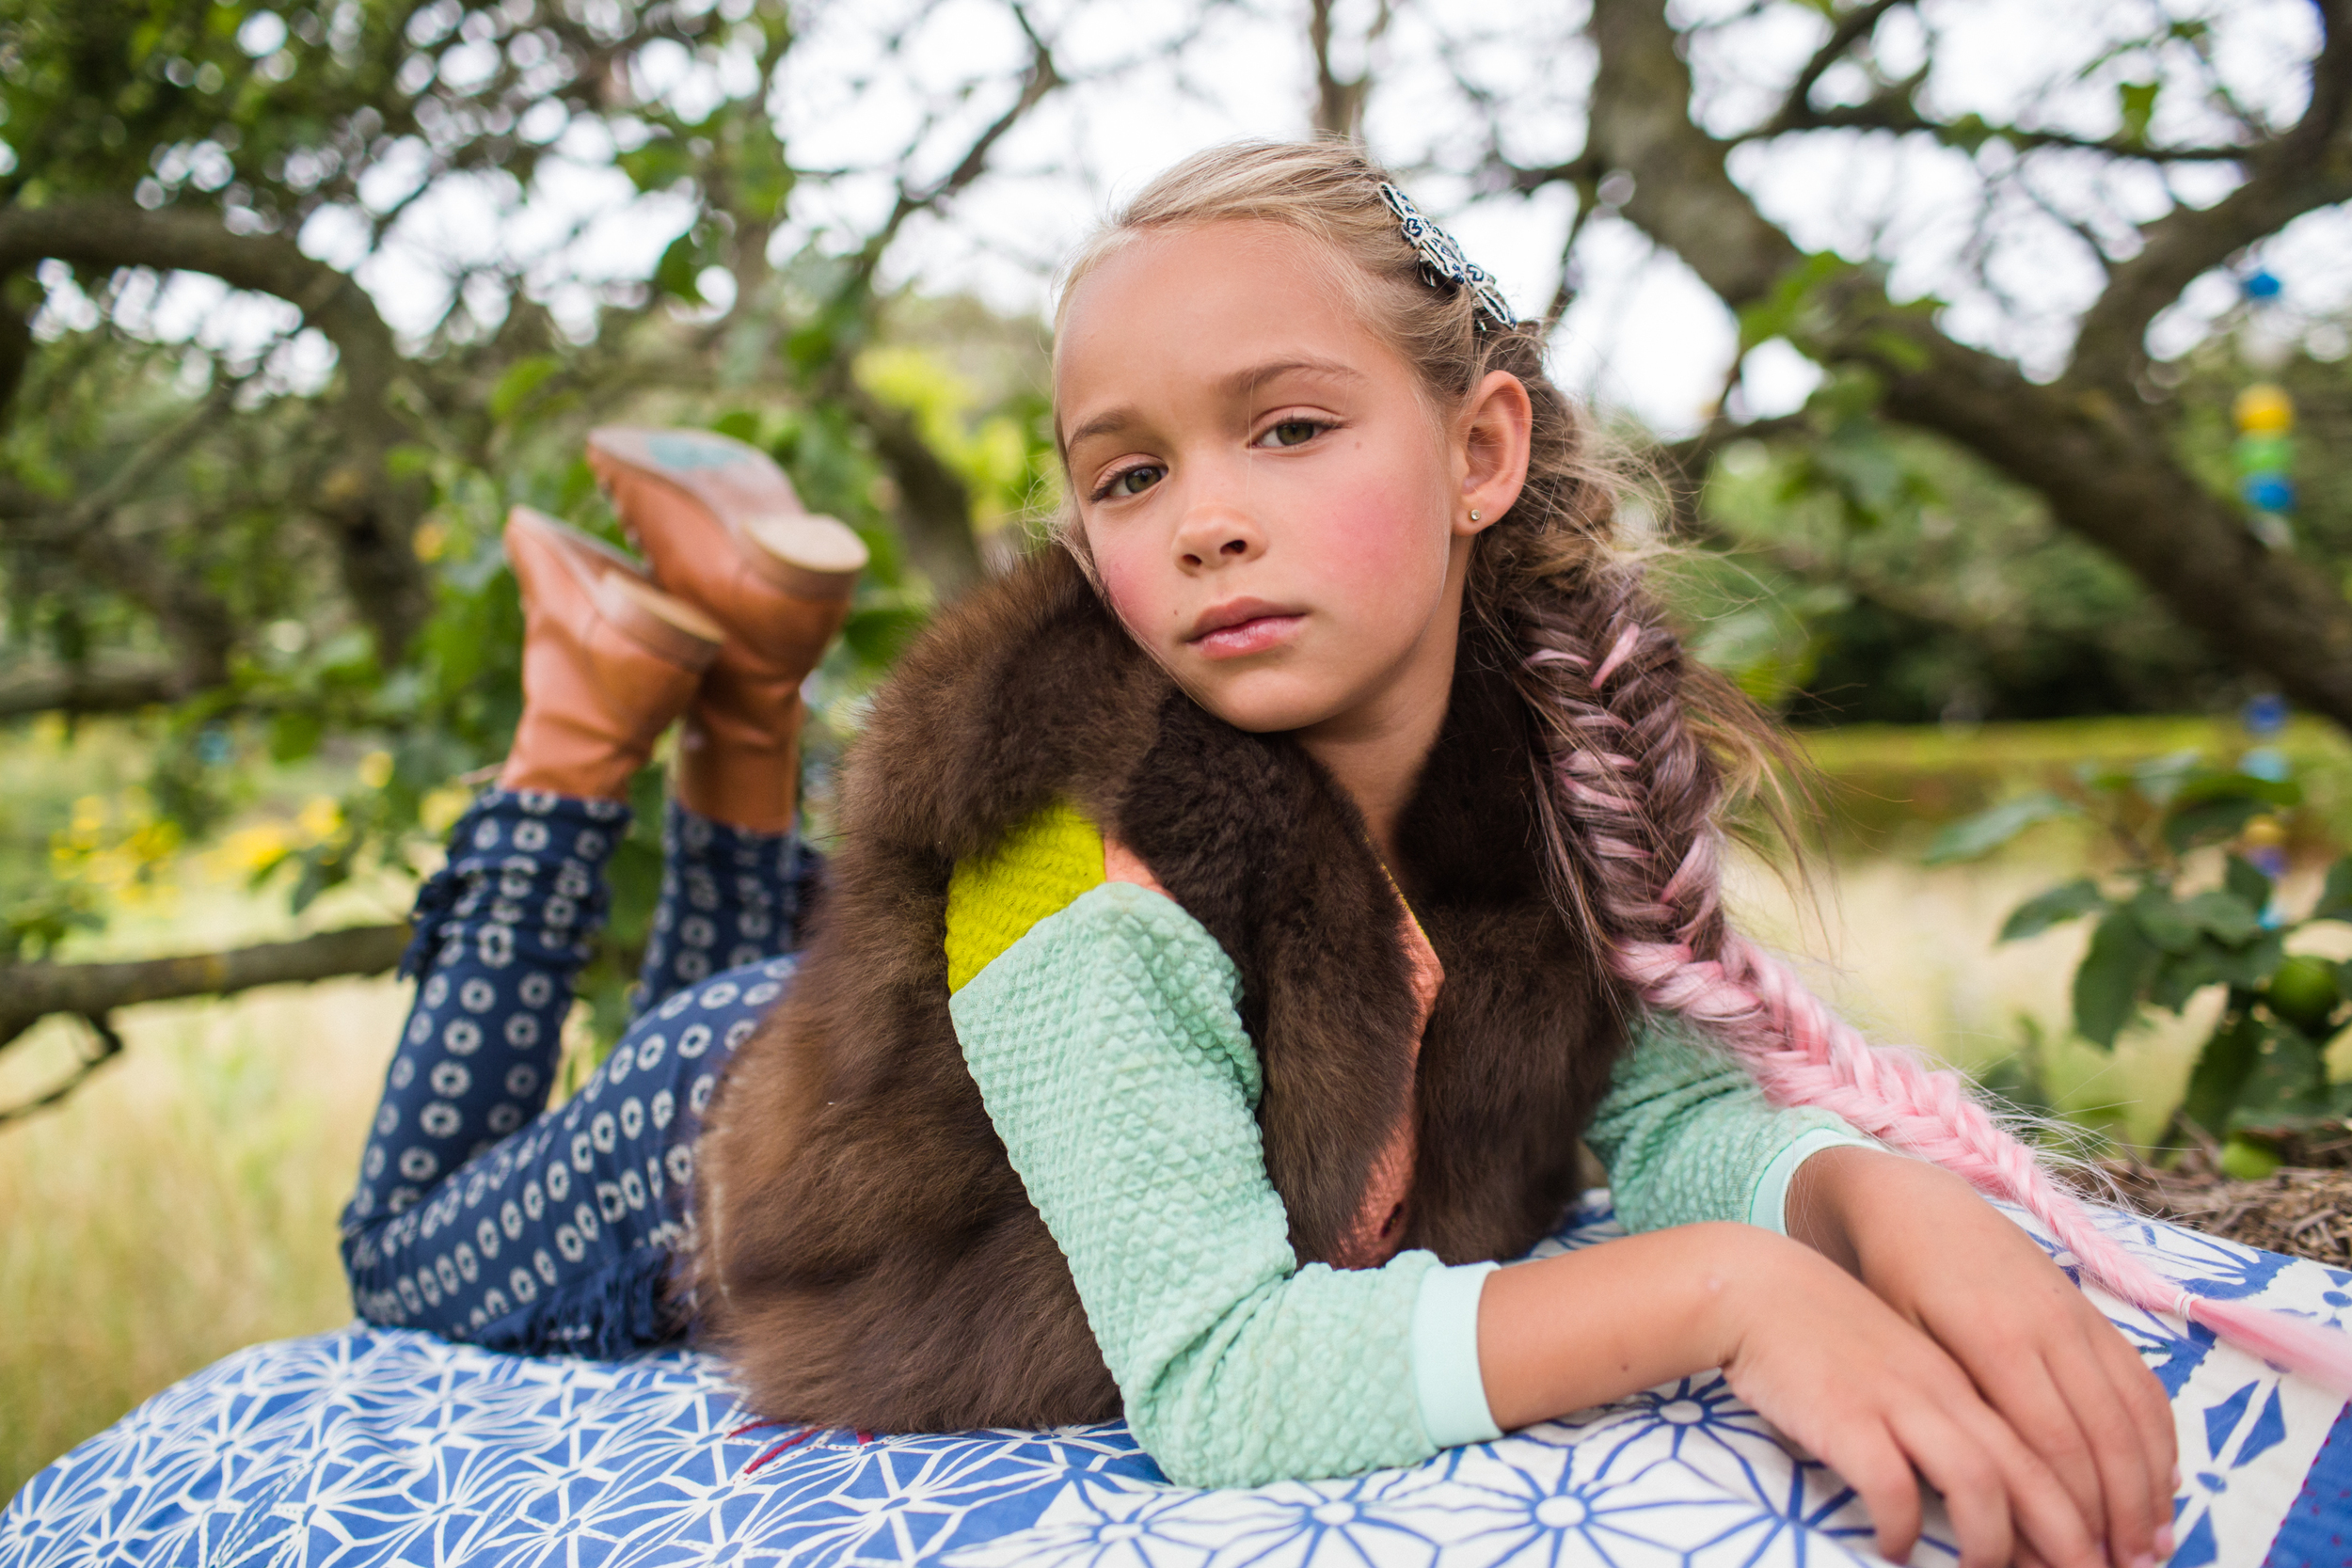 Little Flea Forever Nomad shoot. Warm alpaca, cost knits, shearling and feather prints for kids